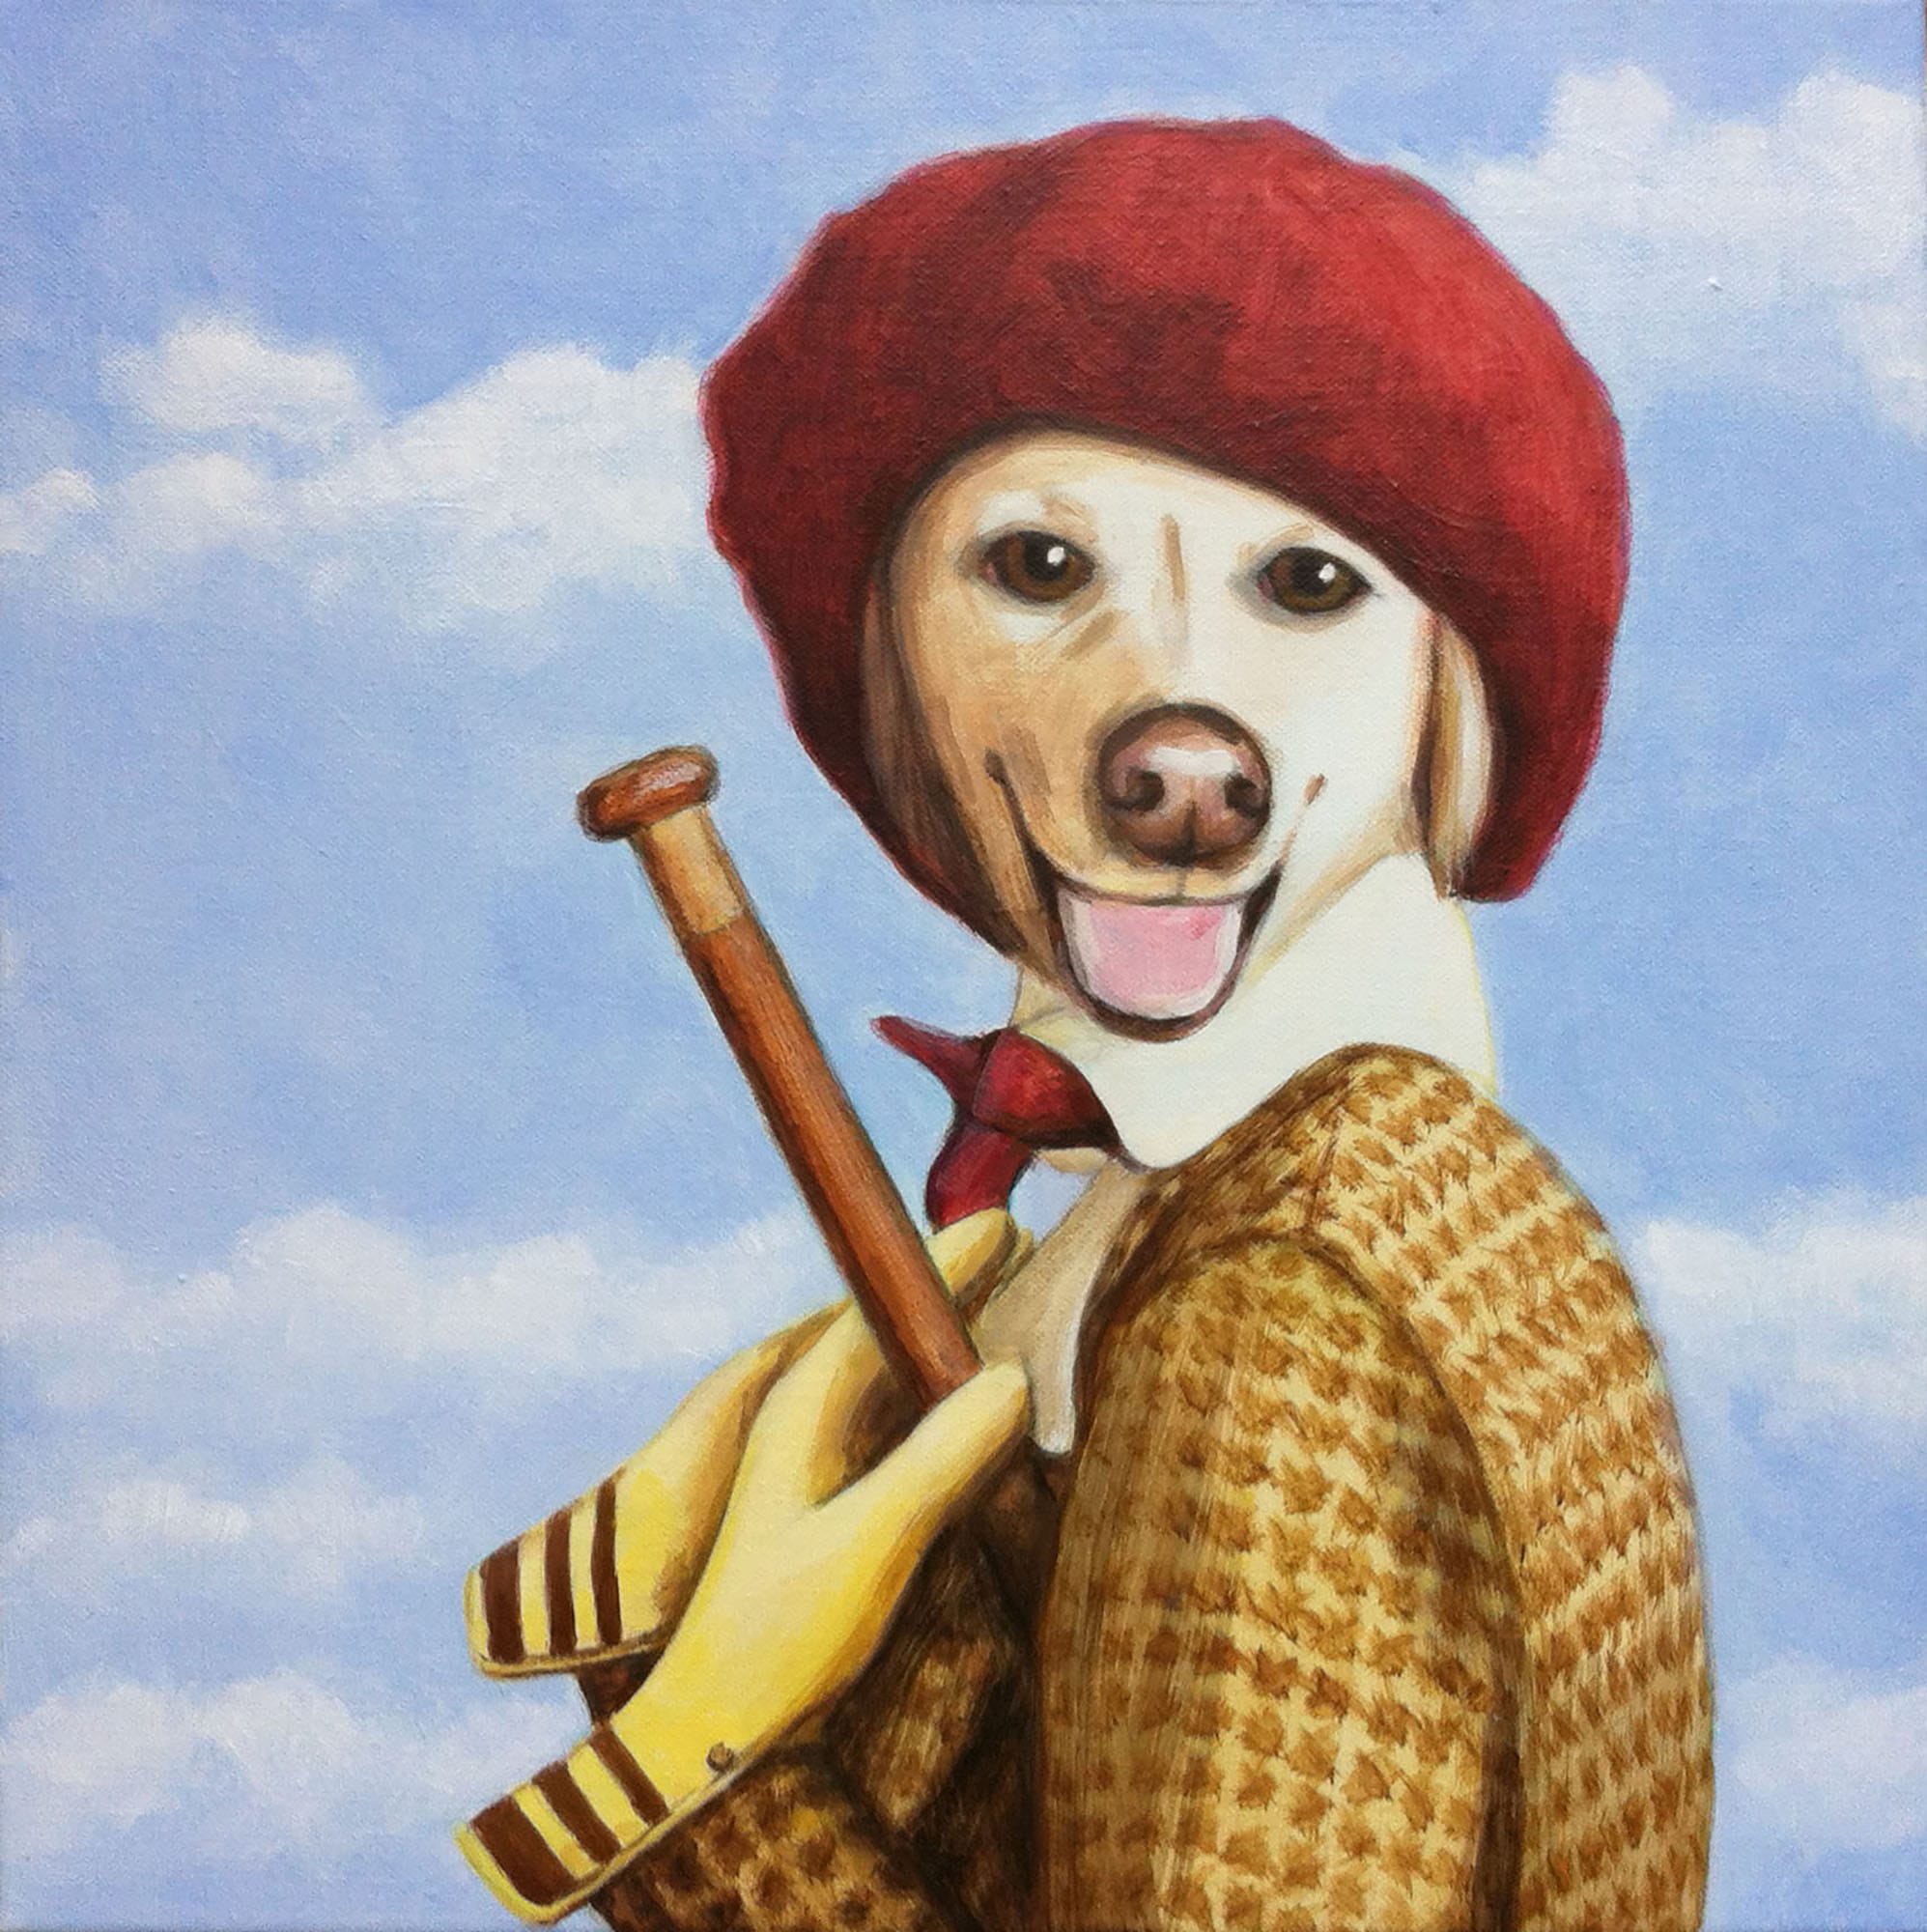 Golden retriever dressed up in a red beret | © Sarah Morrissette